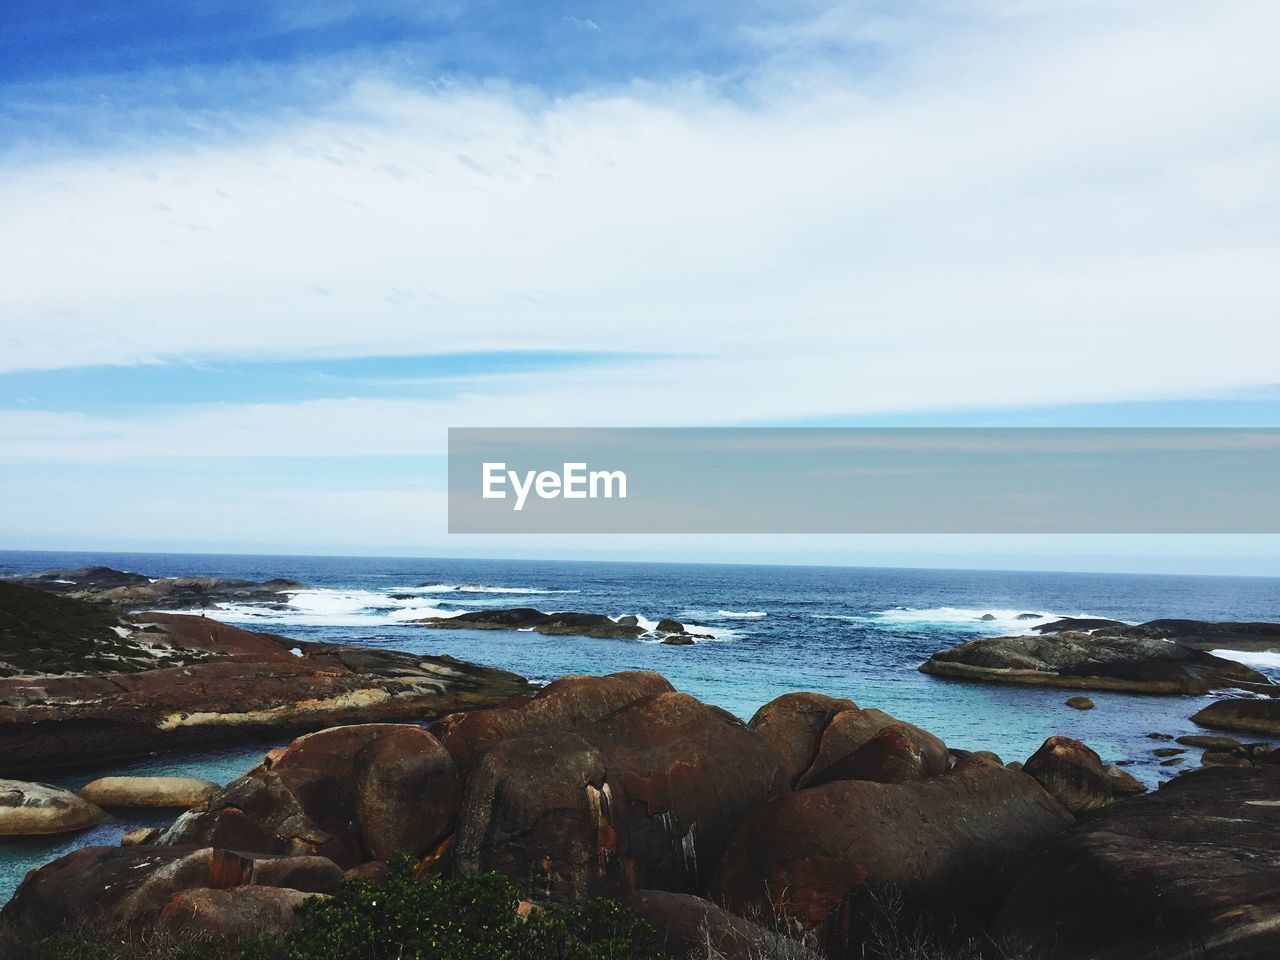 sea, water, sky, scenics - nature, horizon, horizon over water, rock, beauty in nature, cloud - sky, solid, rock - object, tranquility, tranquil scene, beach, land, day, no people, nature, idyllic, outdoors, rocky coastline